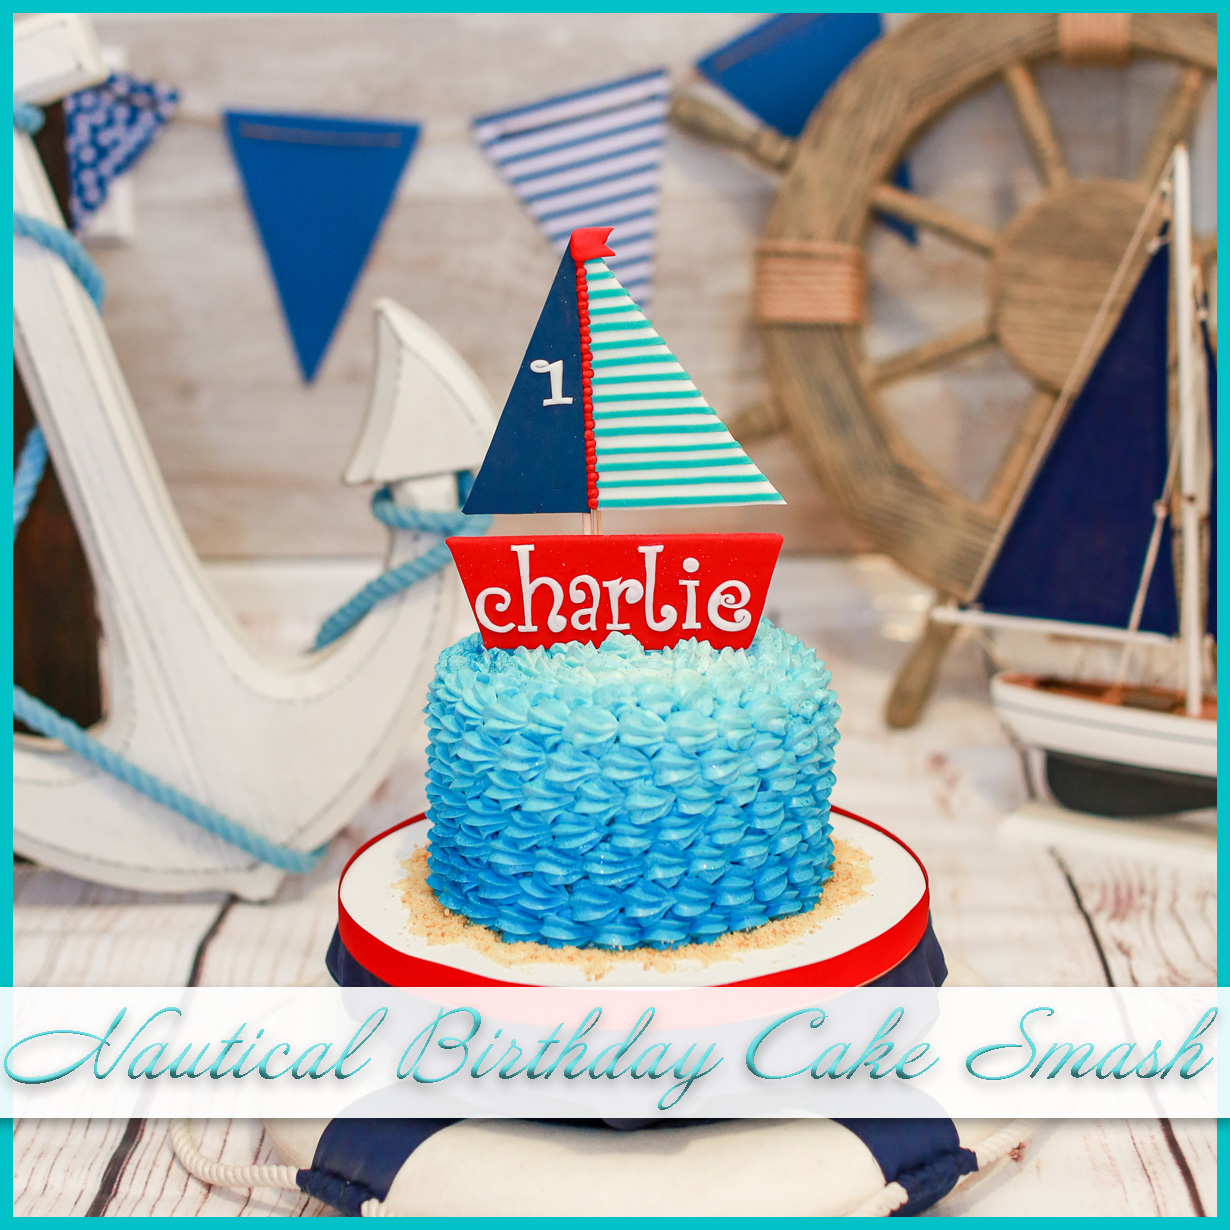 Swell Nautical Cake Smash Charlies 1St Birthday Judithsfreshlook Com Personalised Birthday Cards Veneteletsinfo